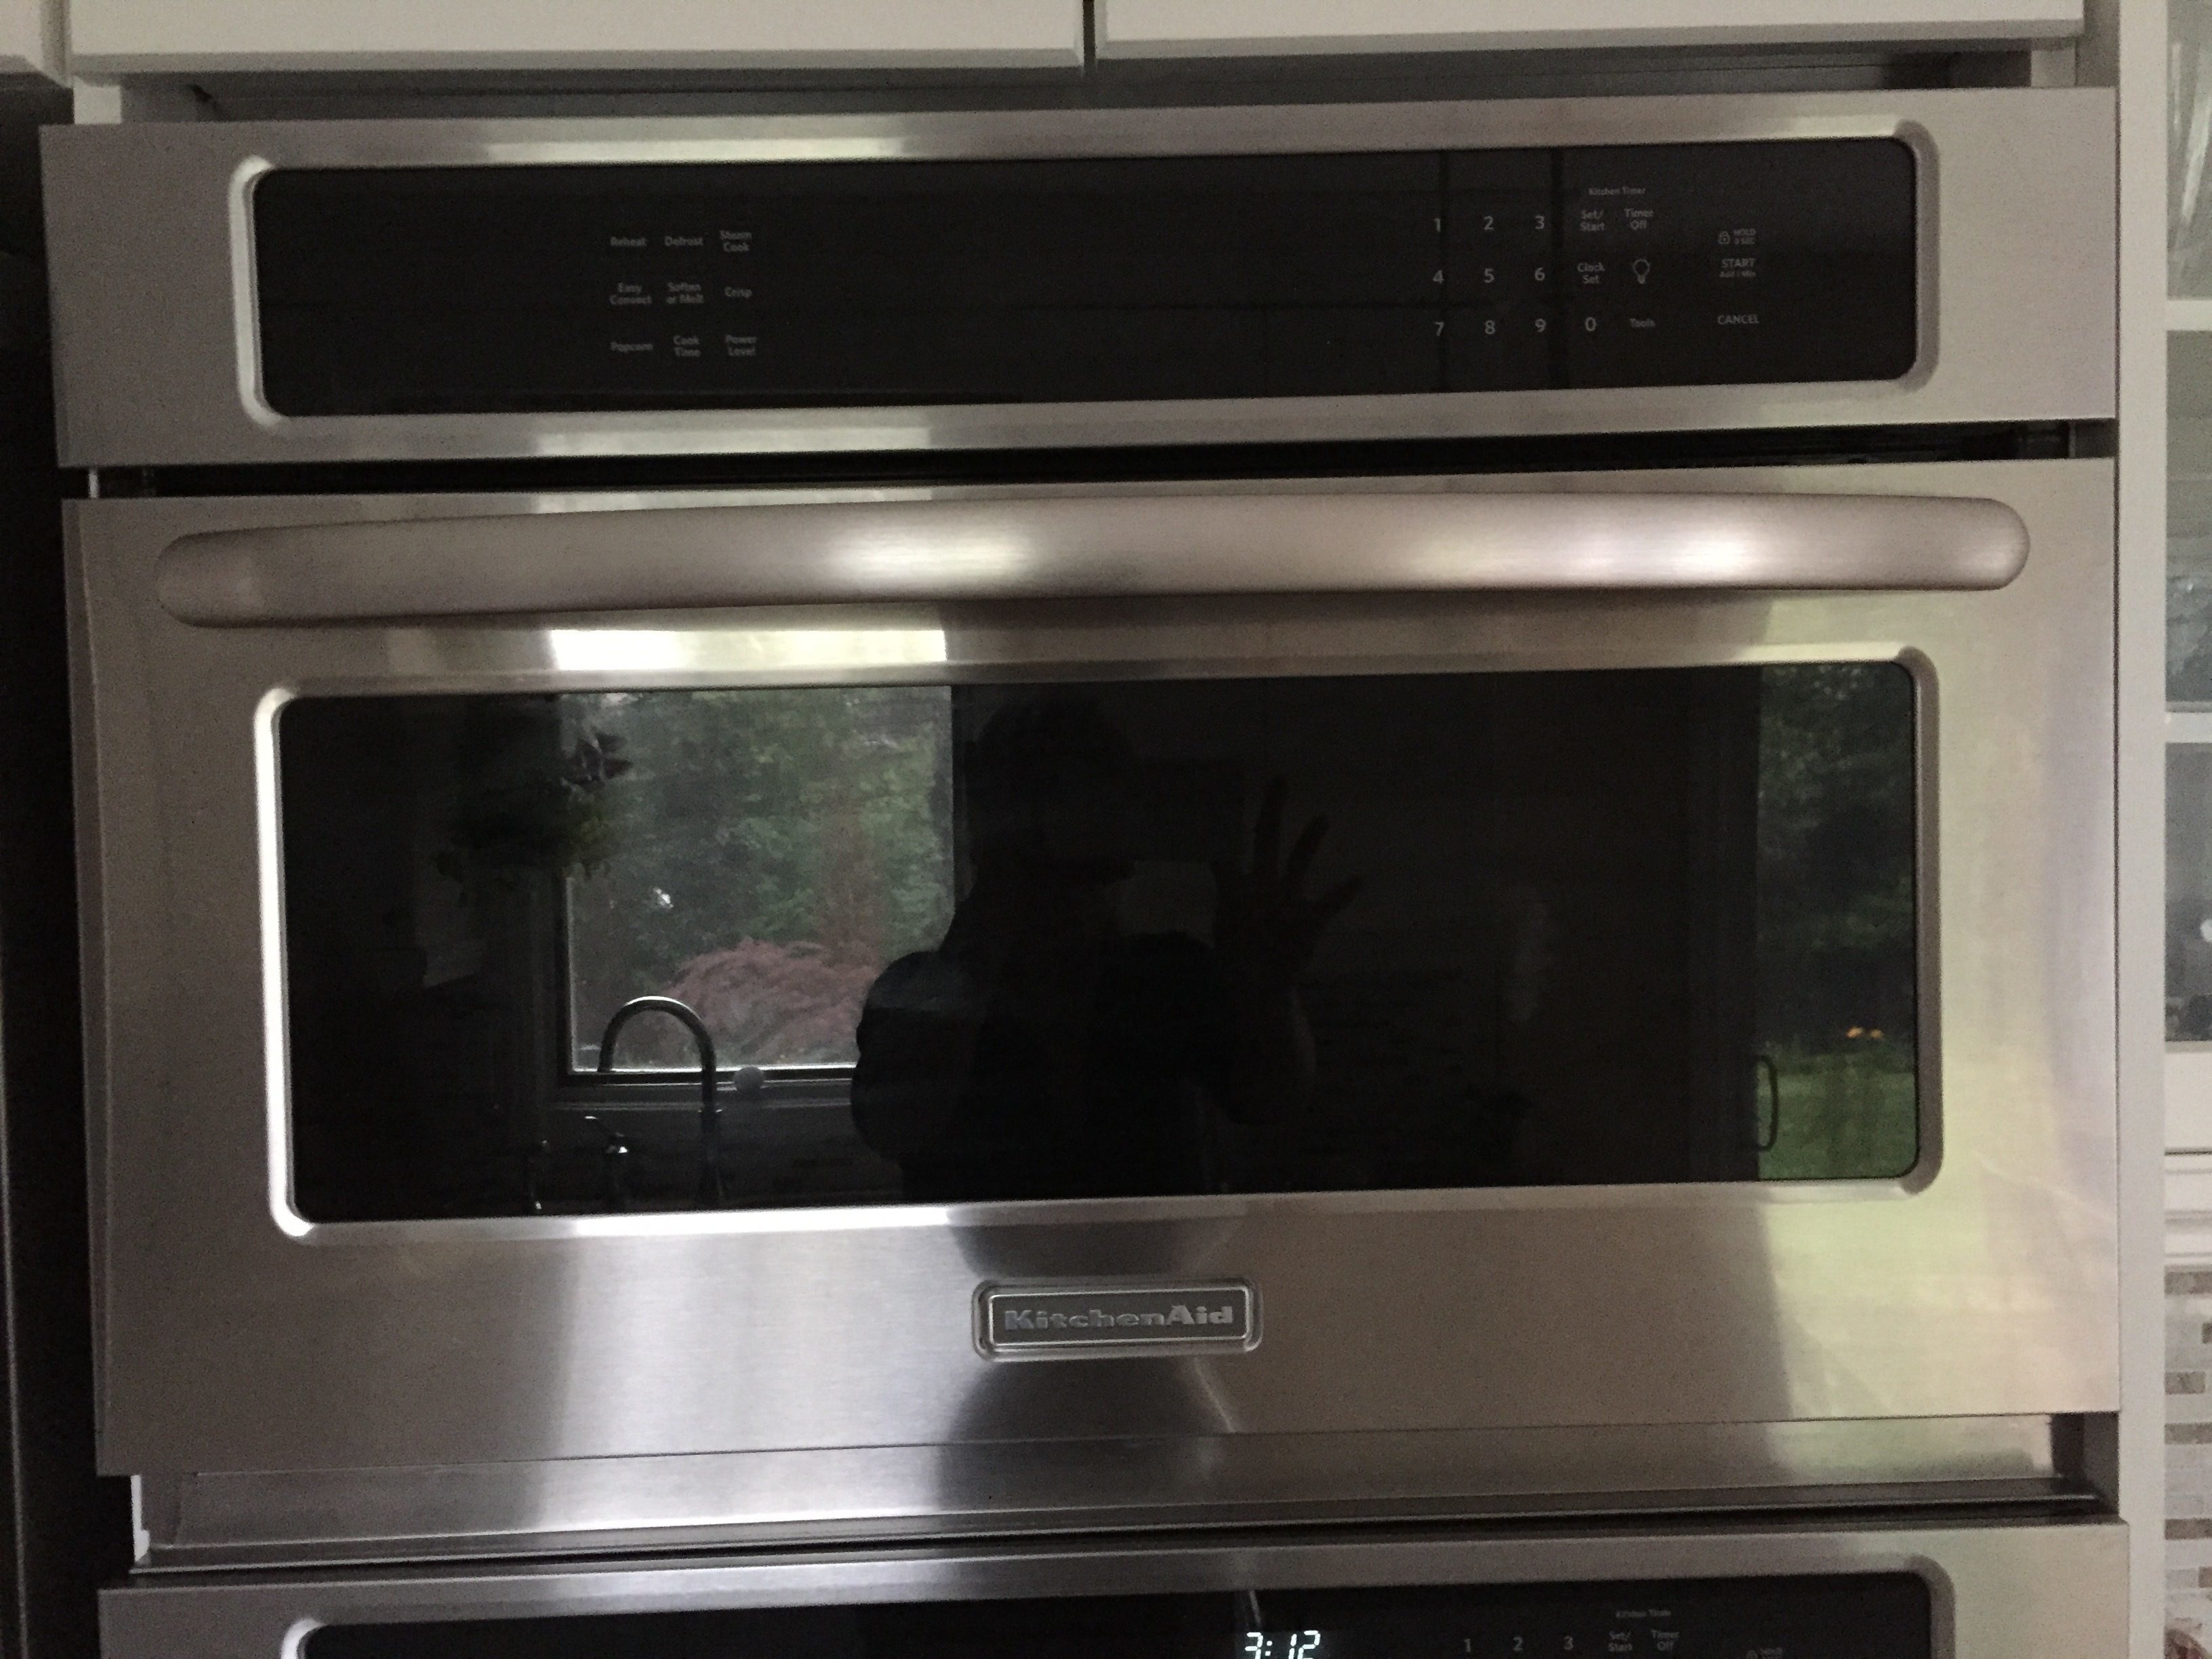 Kitchenaid Convection Microwave Over The Range top 216 reviews and complaints about kitchenaid microwave